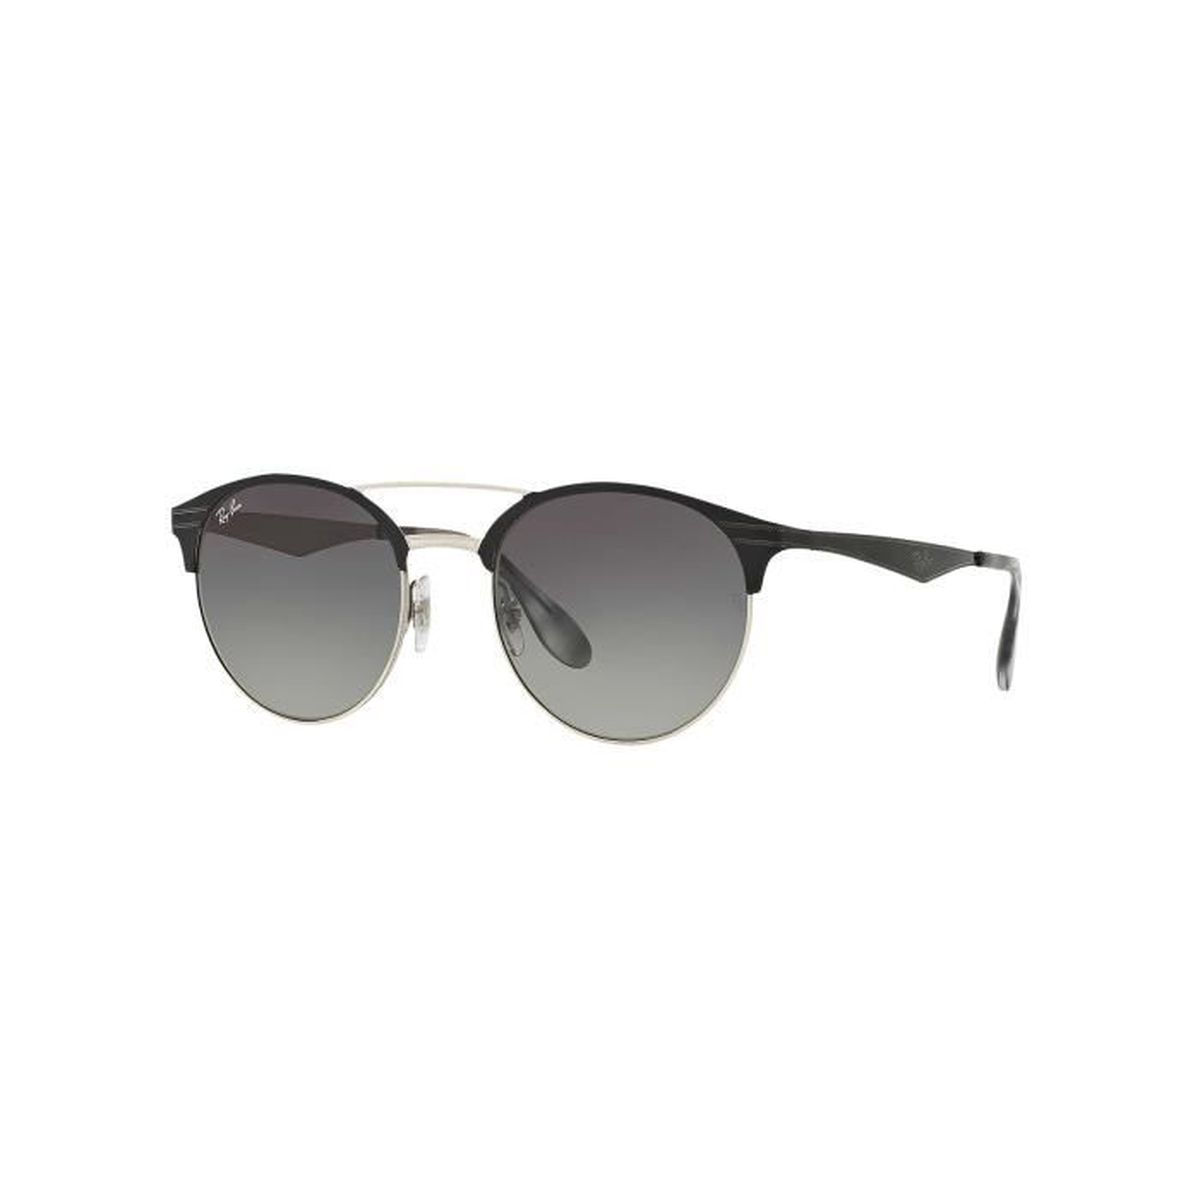 8fc3b9c5b26 Lunette Aviator Ray Ban Homme « One More Soul